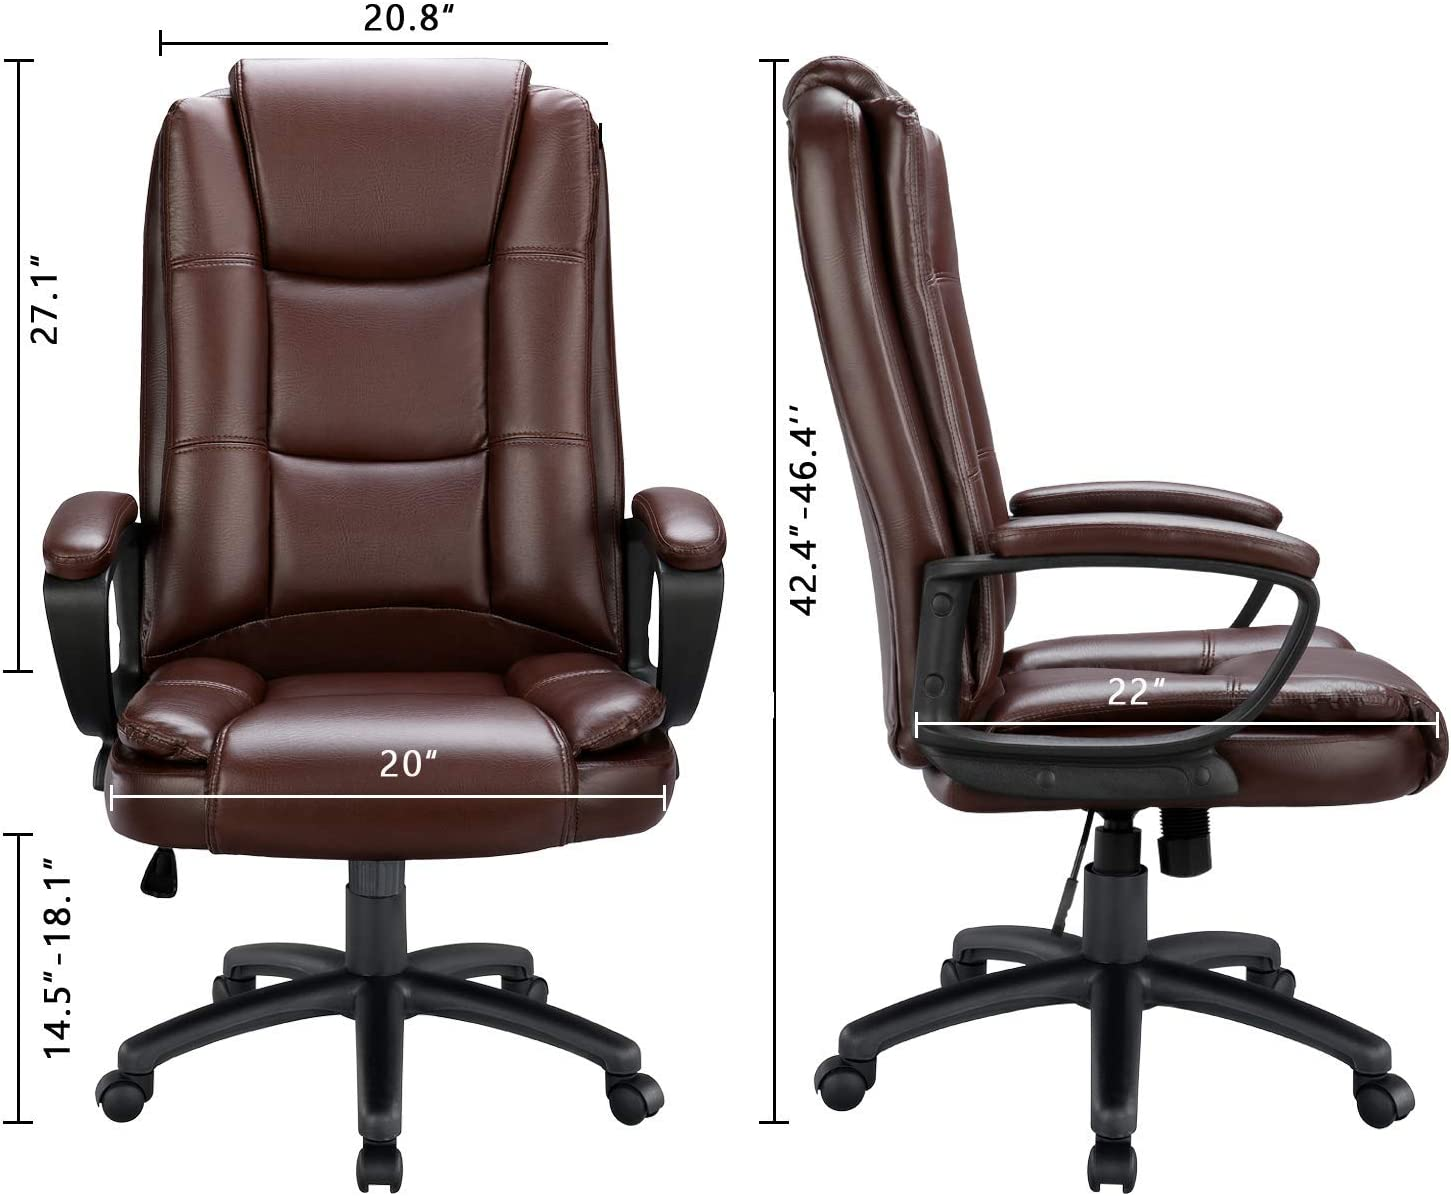 ghdonat.com Black BOSSIN High-Back Executive Office Chair Leather ...